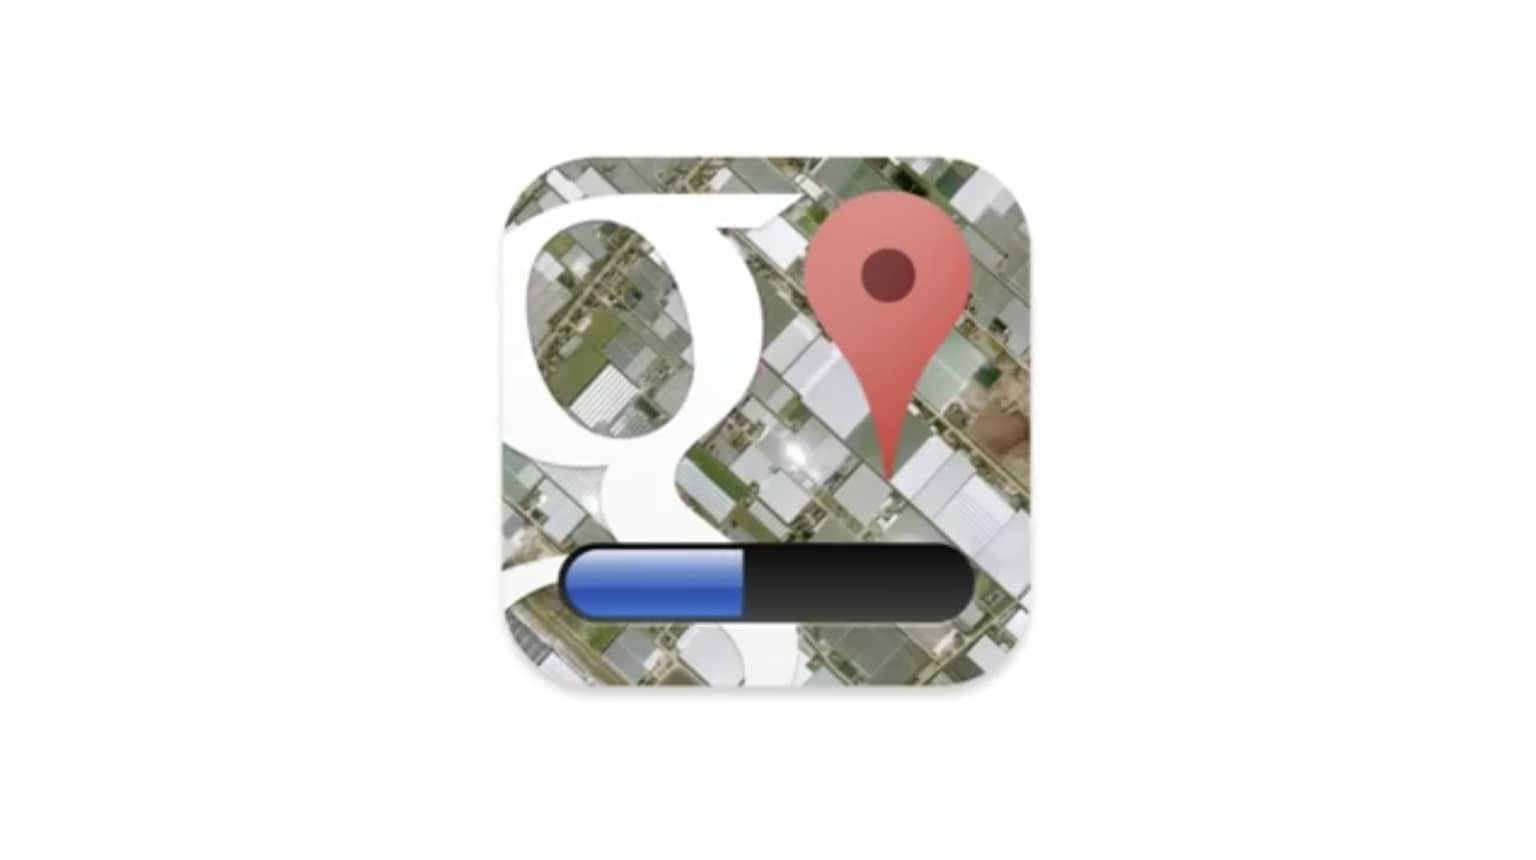 iPhone's Google Maps app